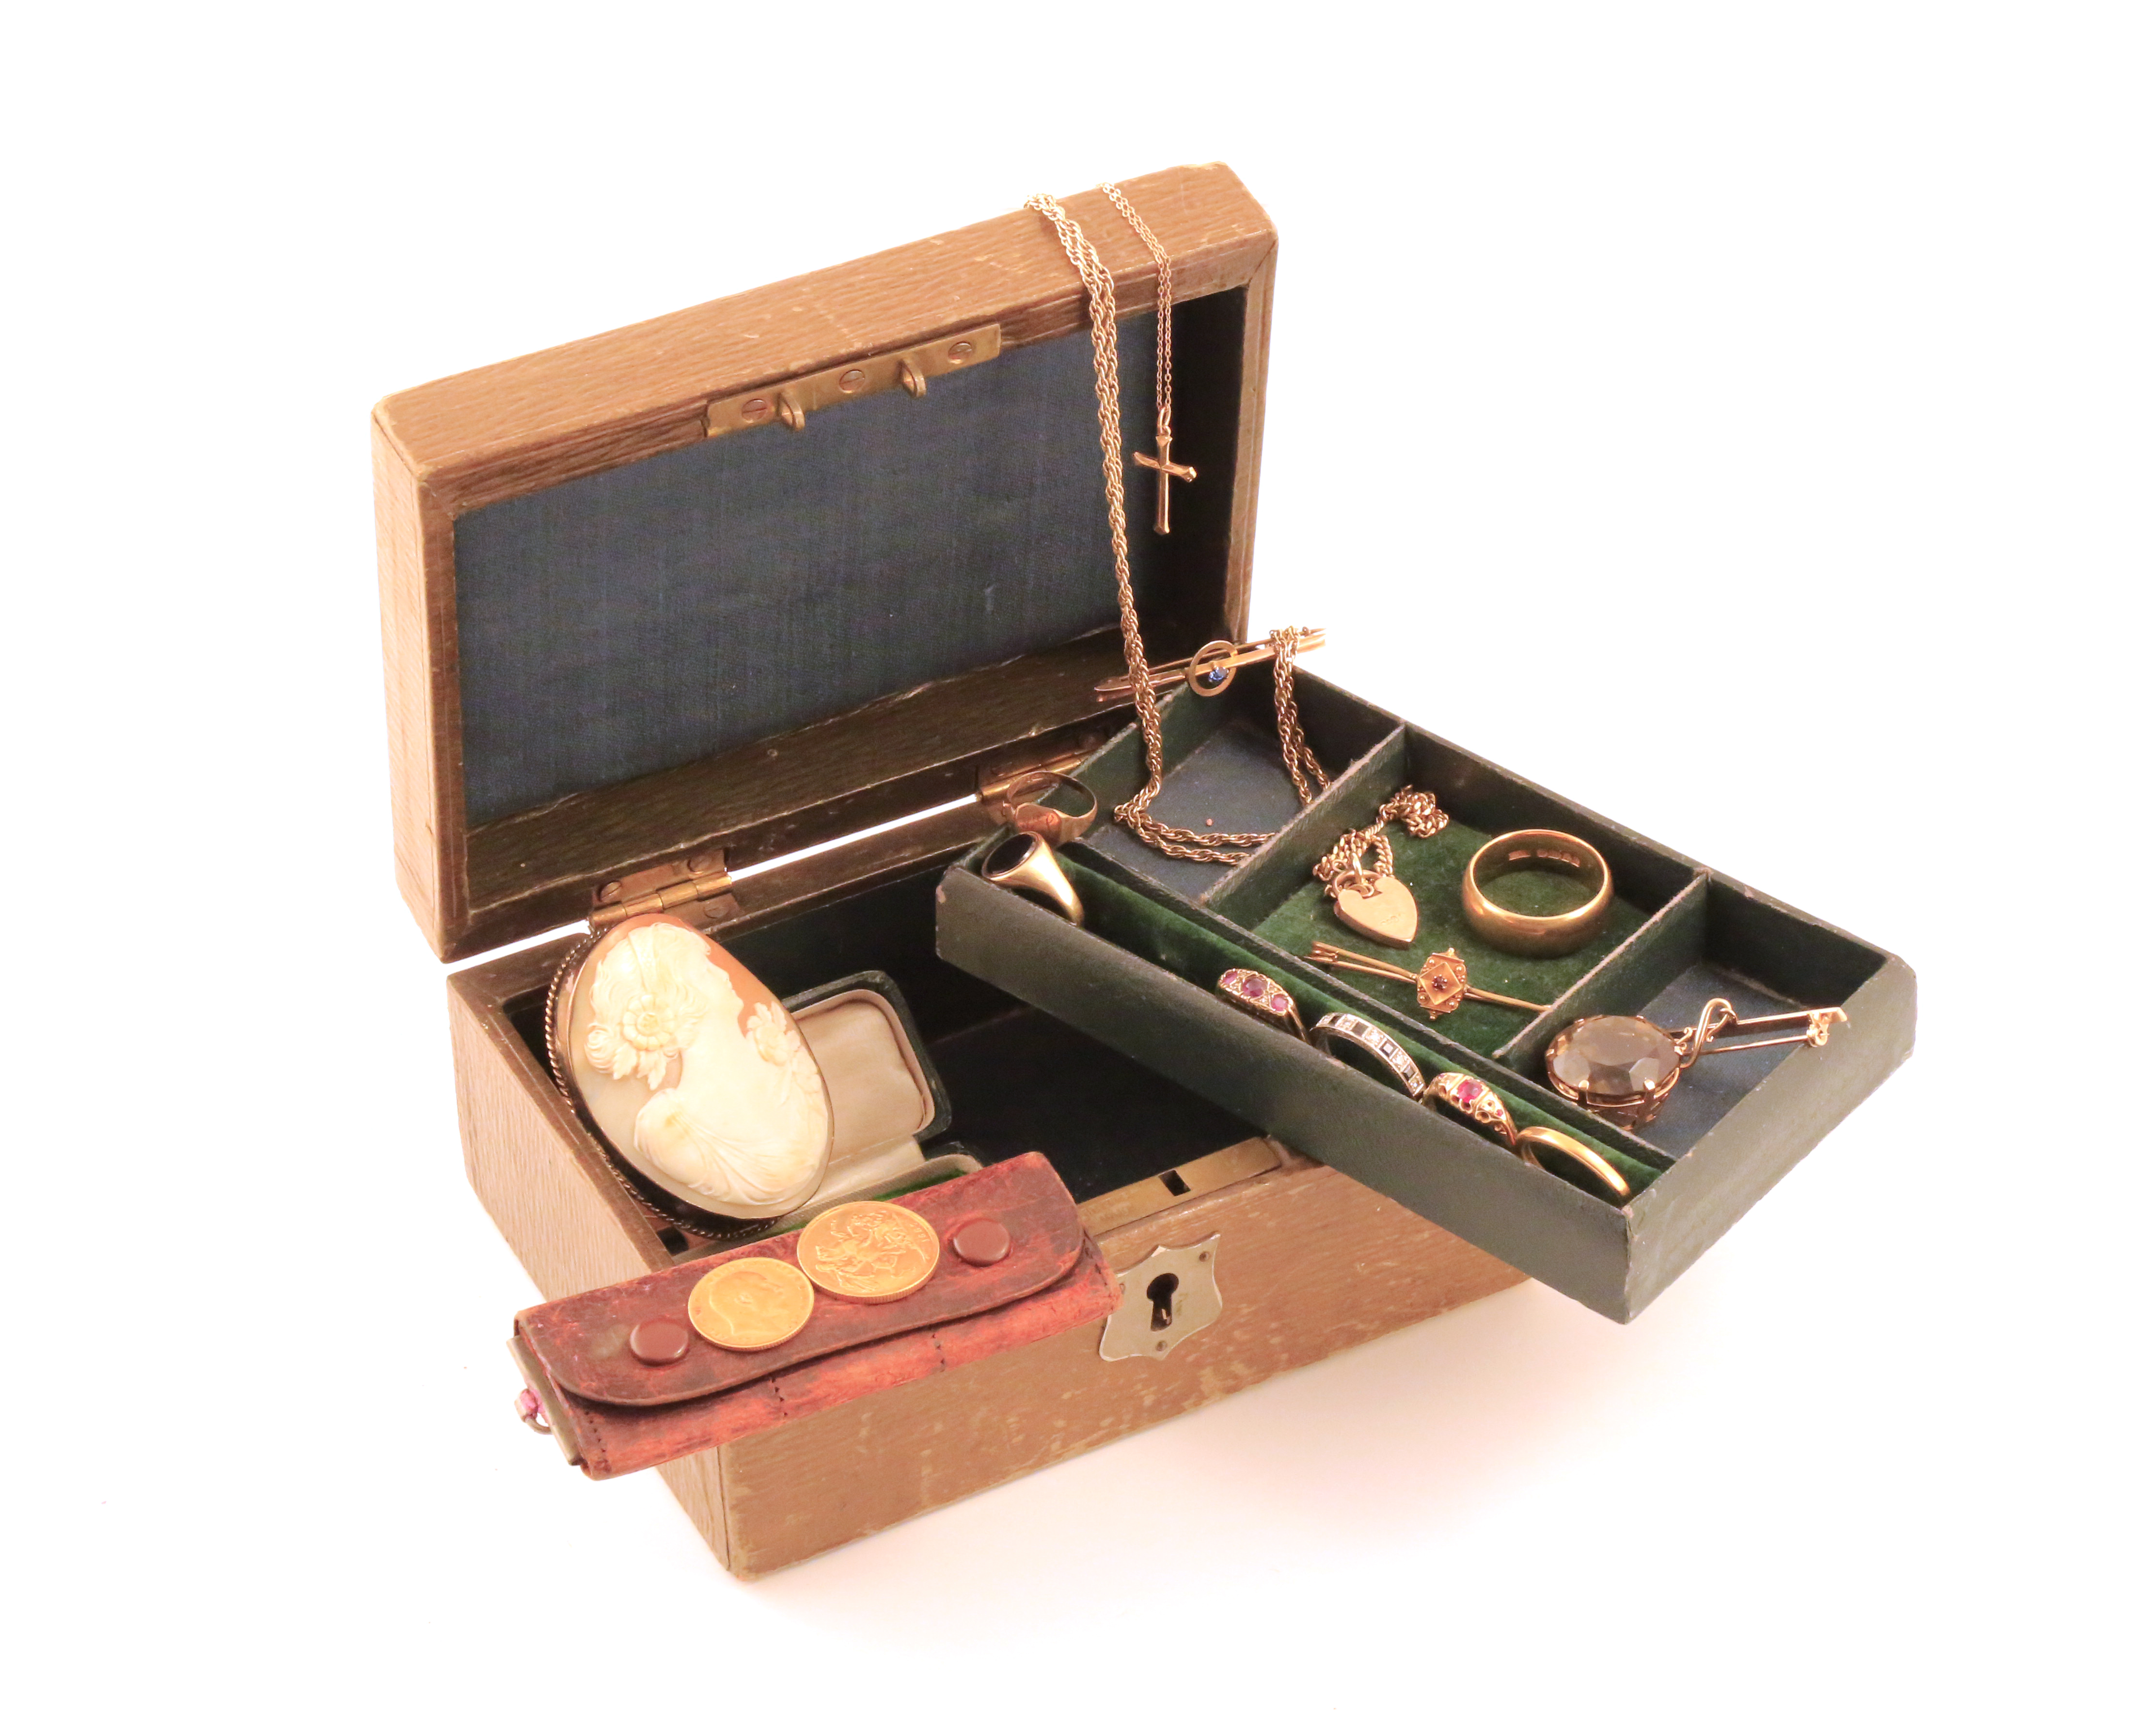 A jewellery casket containing various items of jewellery